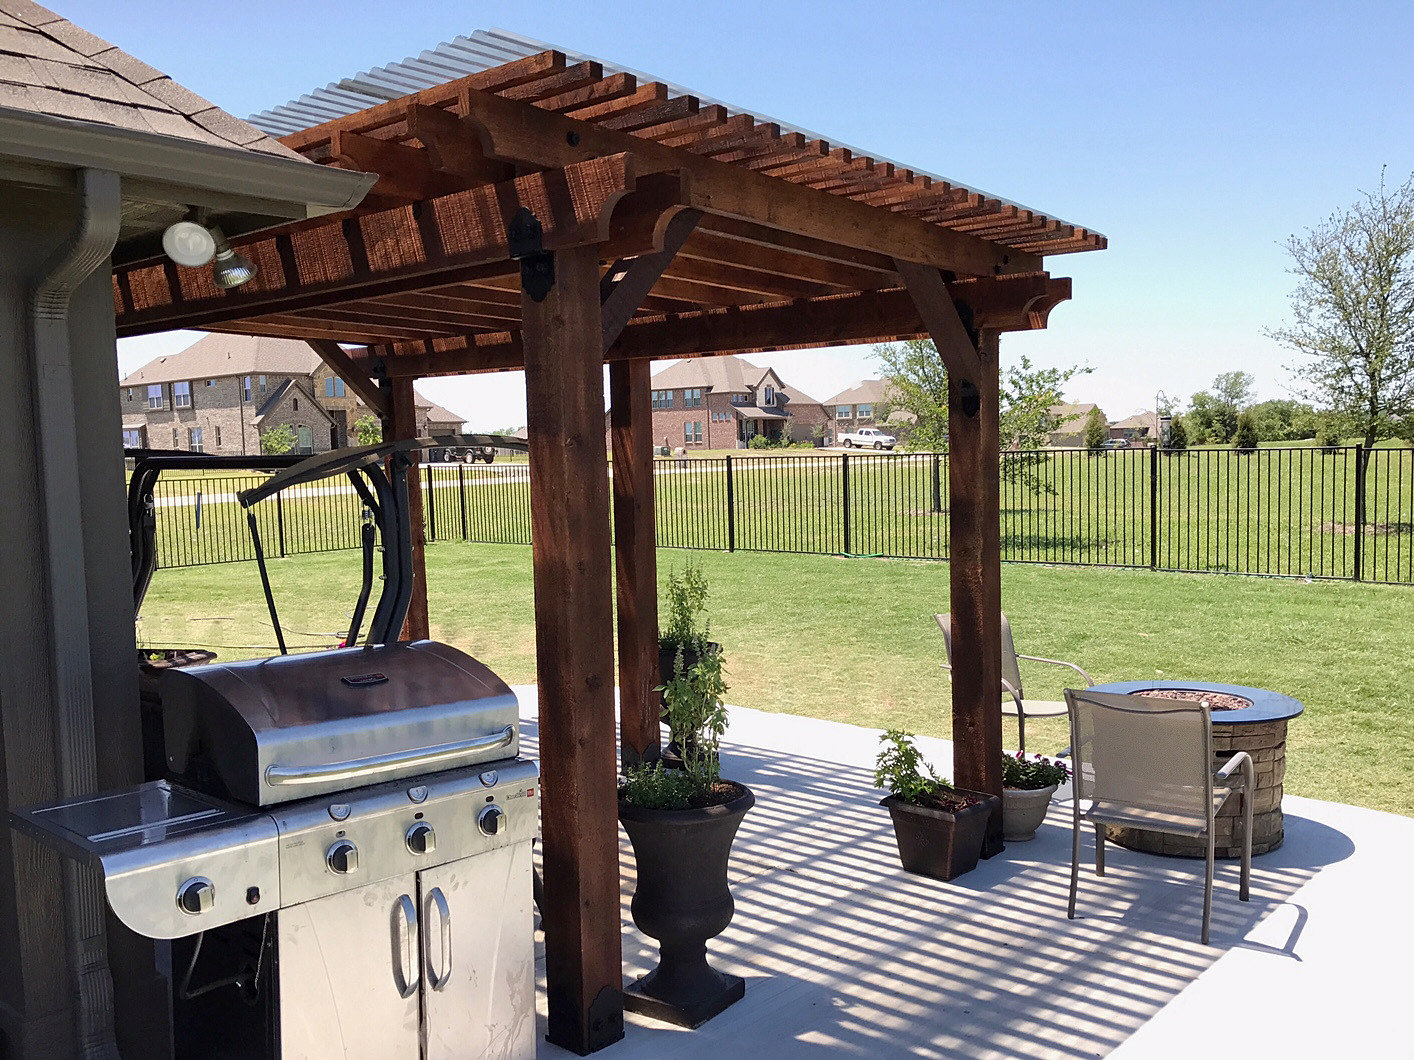 Outdoor Living | HHH Outdoor Living | United States ... on Hhh Outdoor Living id=34861